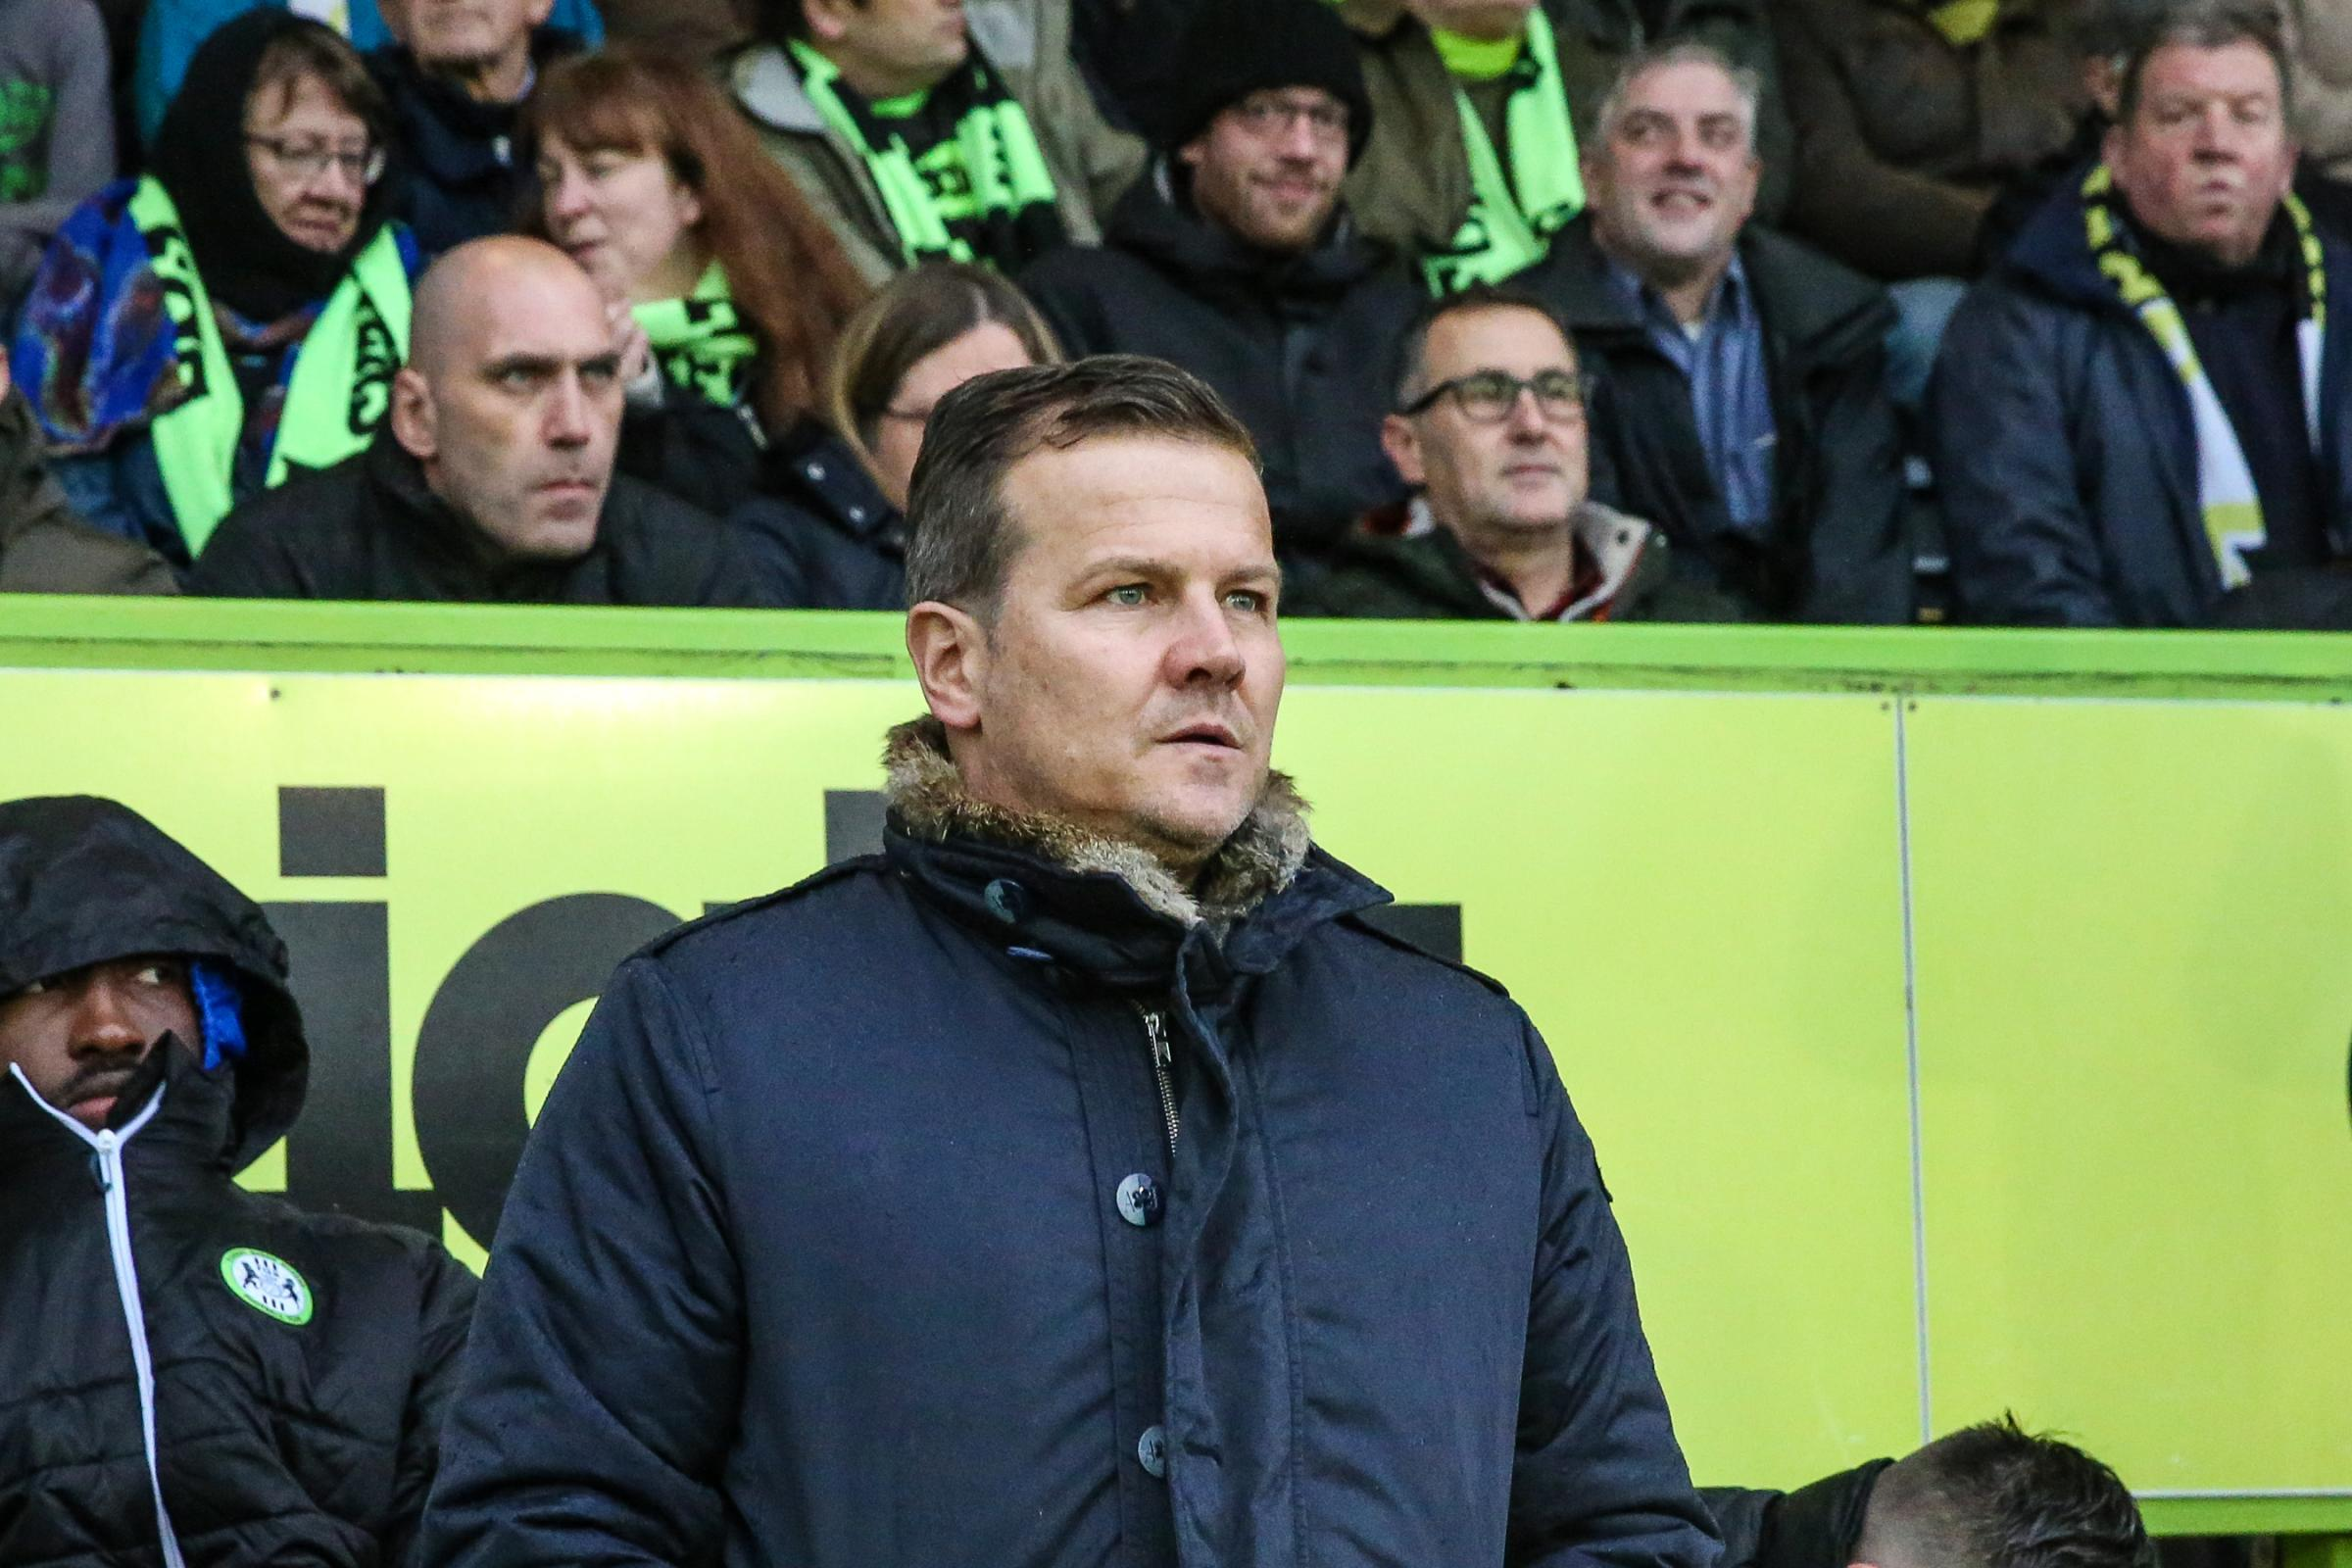 Forest Green Rovers manager, Mark Cooper before the start of the match during the EFL Sky Bet League 2 match between Forest Green Rovers and Crewe Alexandra at the New Lawn, Forest Green, United Kingdom on 18 November 2017. Photo by Shane Healey.